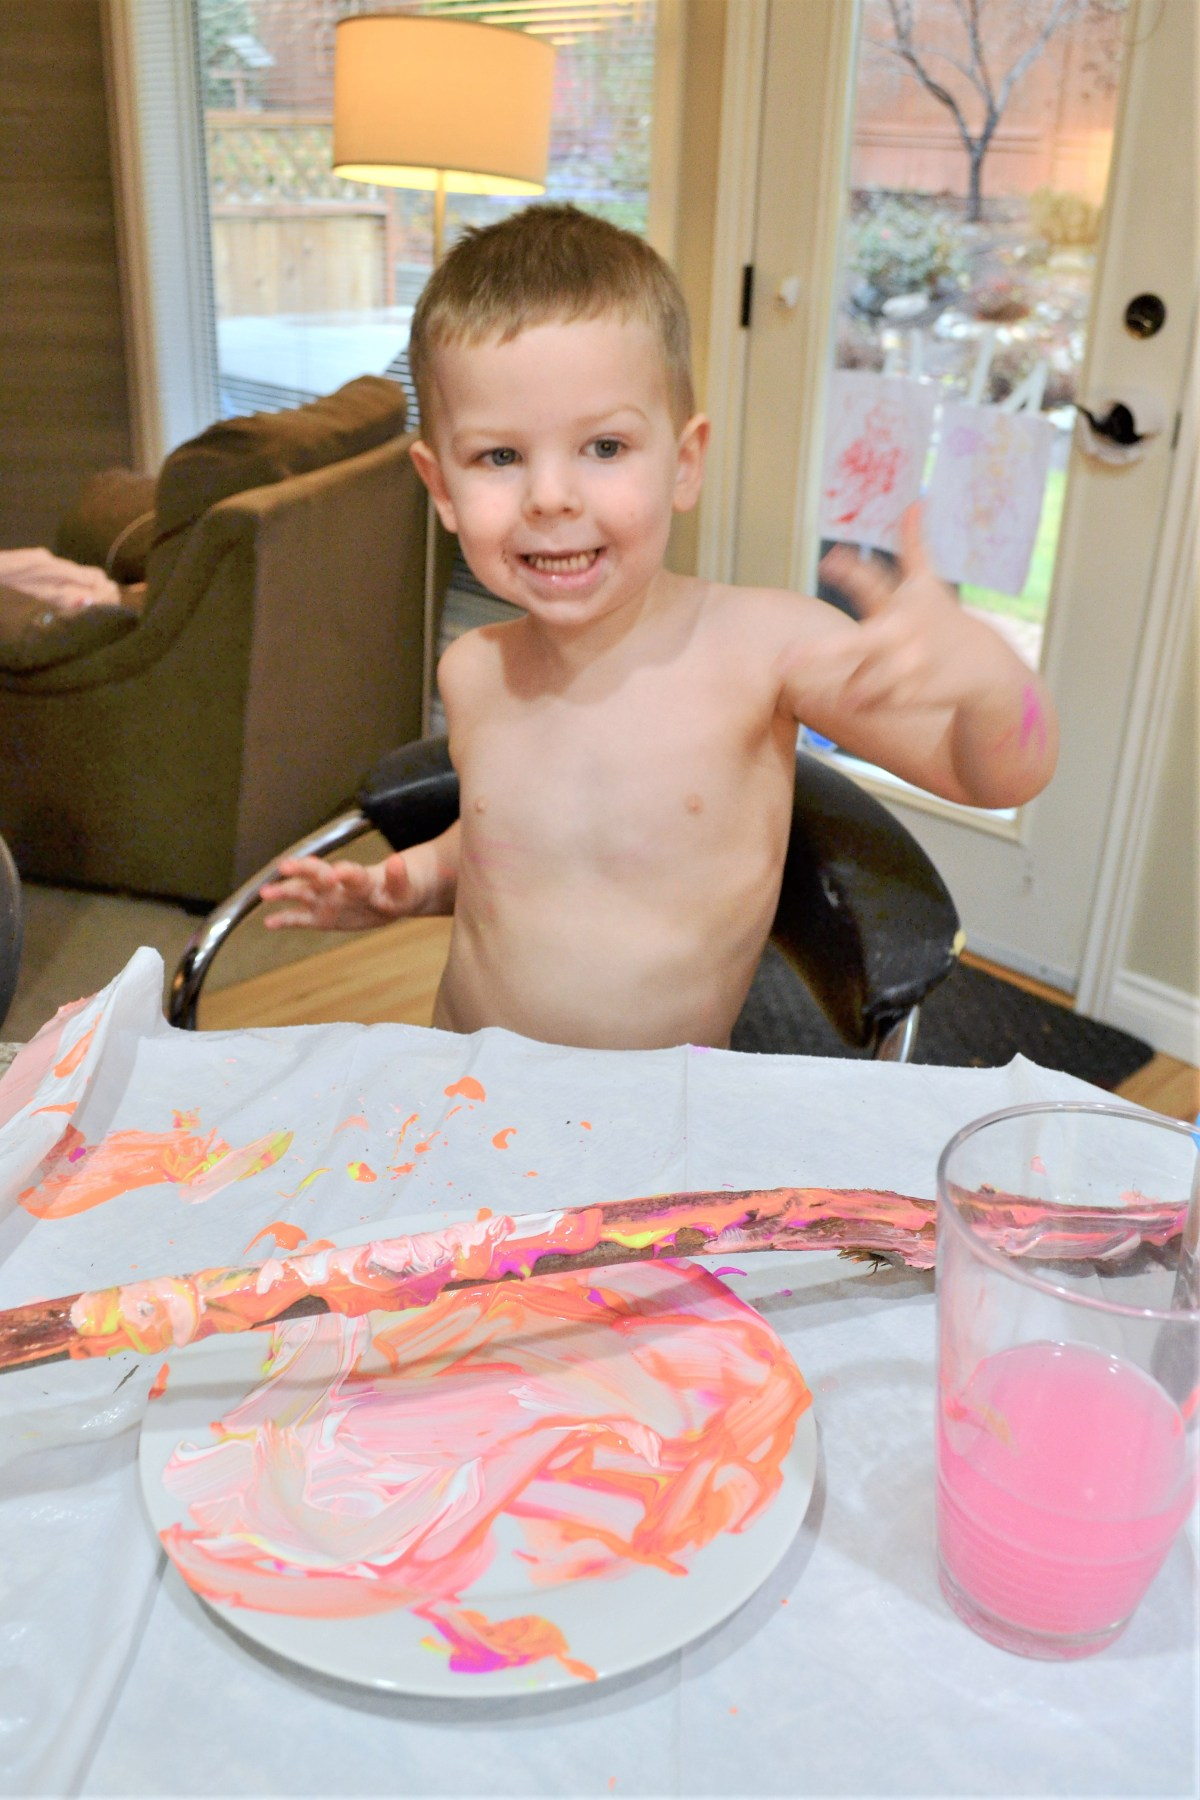 Crafts for kids - Painted Sticks! - having fun